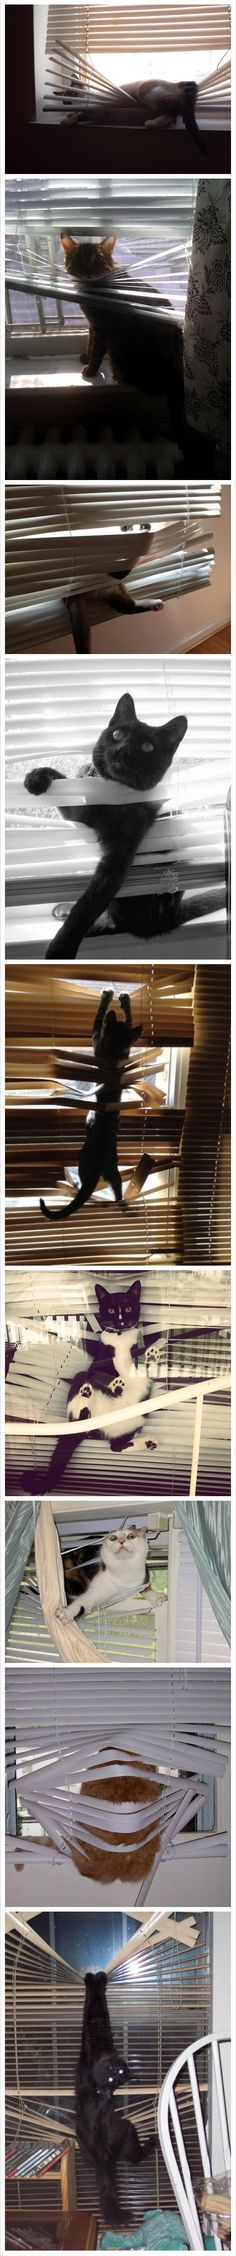 Cats and blinds dont mix